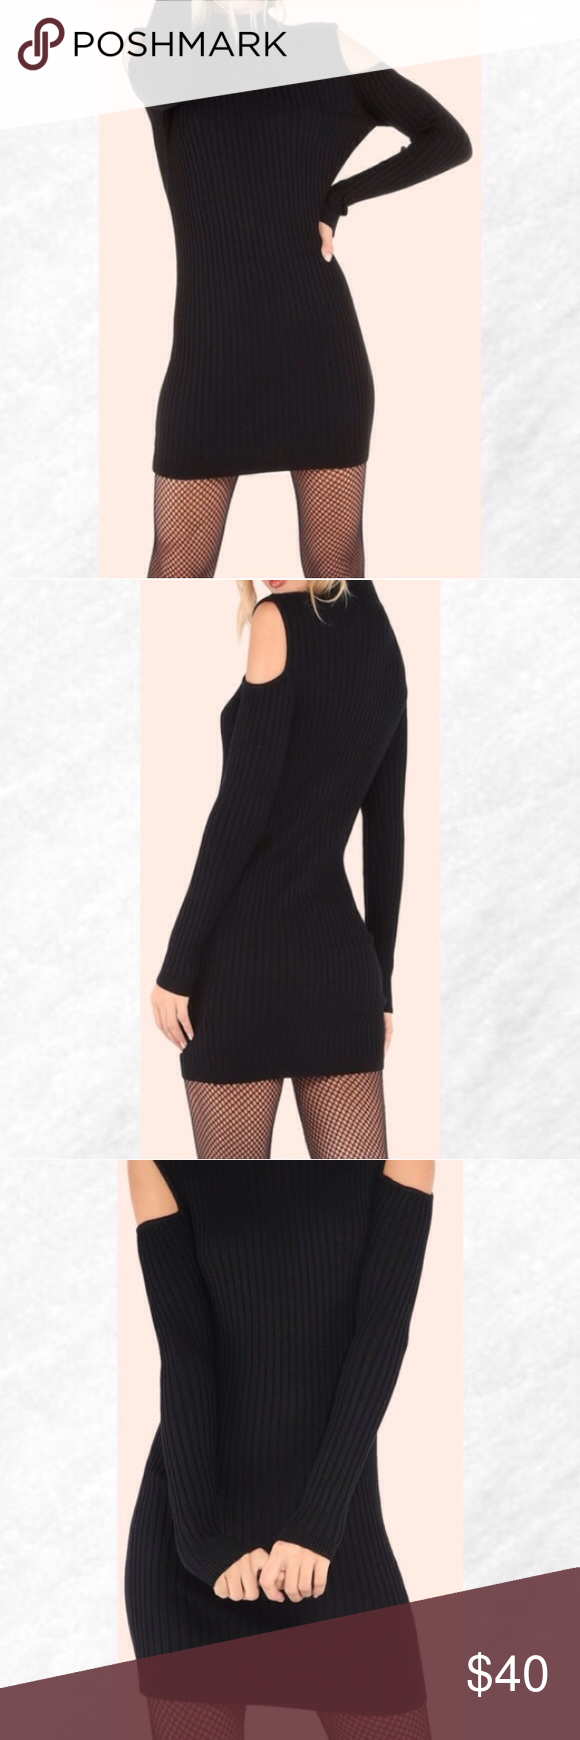 """Clearance! Black Cold Shoulder Ribbed Knit Dress This season also needs some dress lovin' and you can bring it with this dress! Featuring ribbed knit material, a mock neckline and a cold shoulder body. Dress measures 32"""" in. from top to bottom hem. Pair with leggings or skinny jeans and ankle boots. 60% Cotton 40% Acrylic. *Price Firm* Dresses Long Sleeve"""